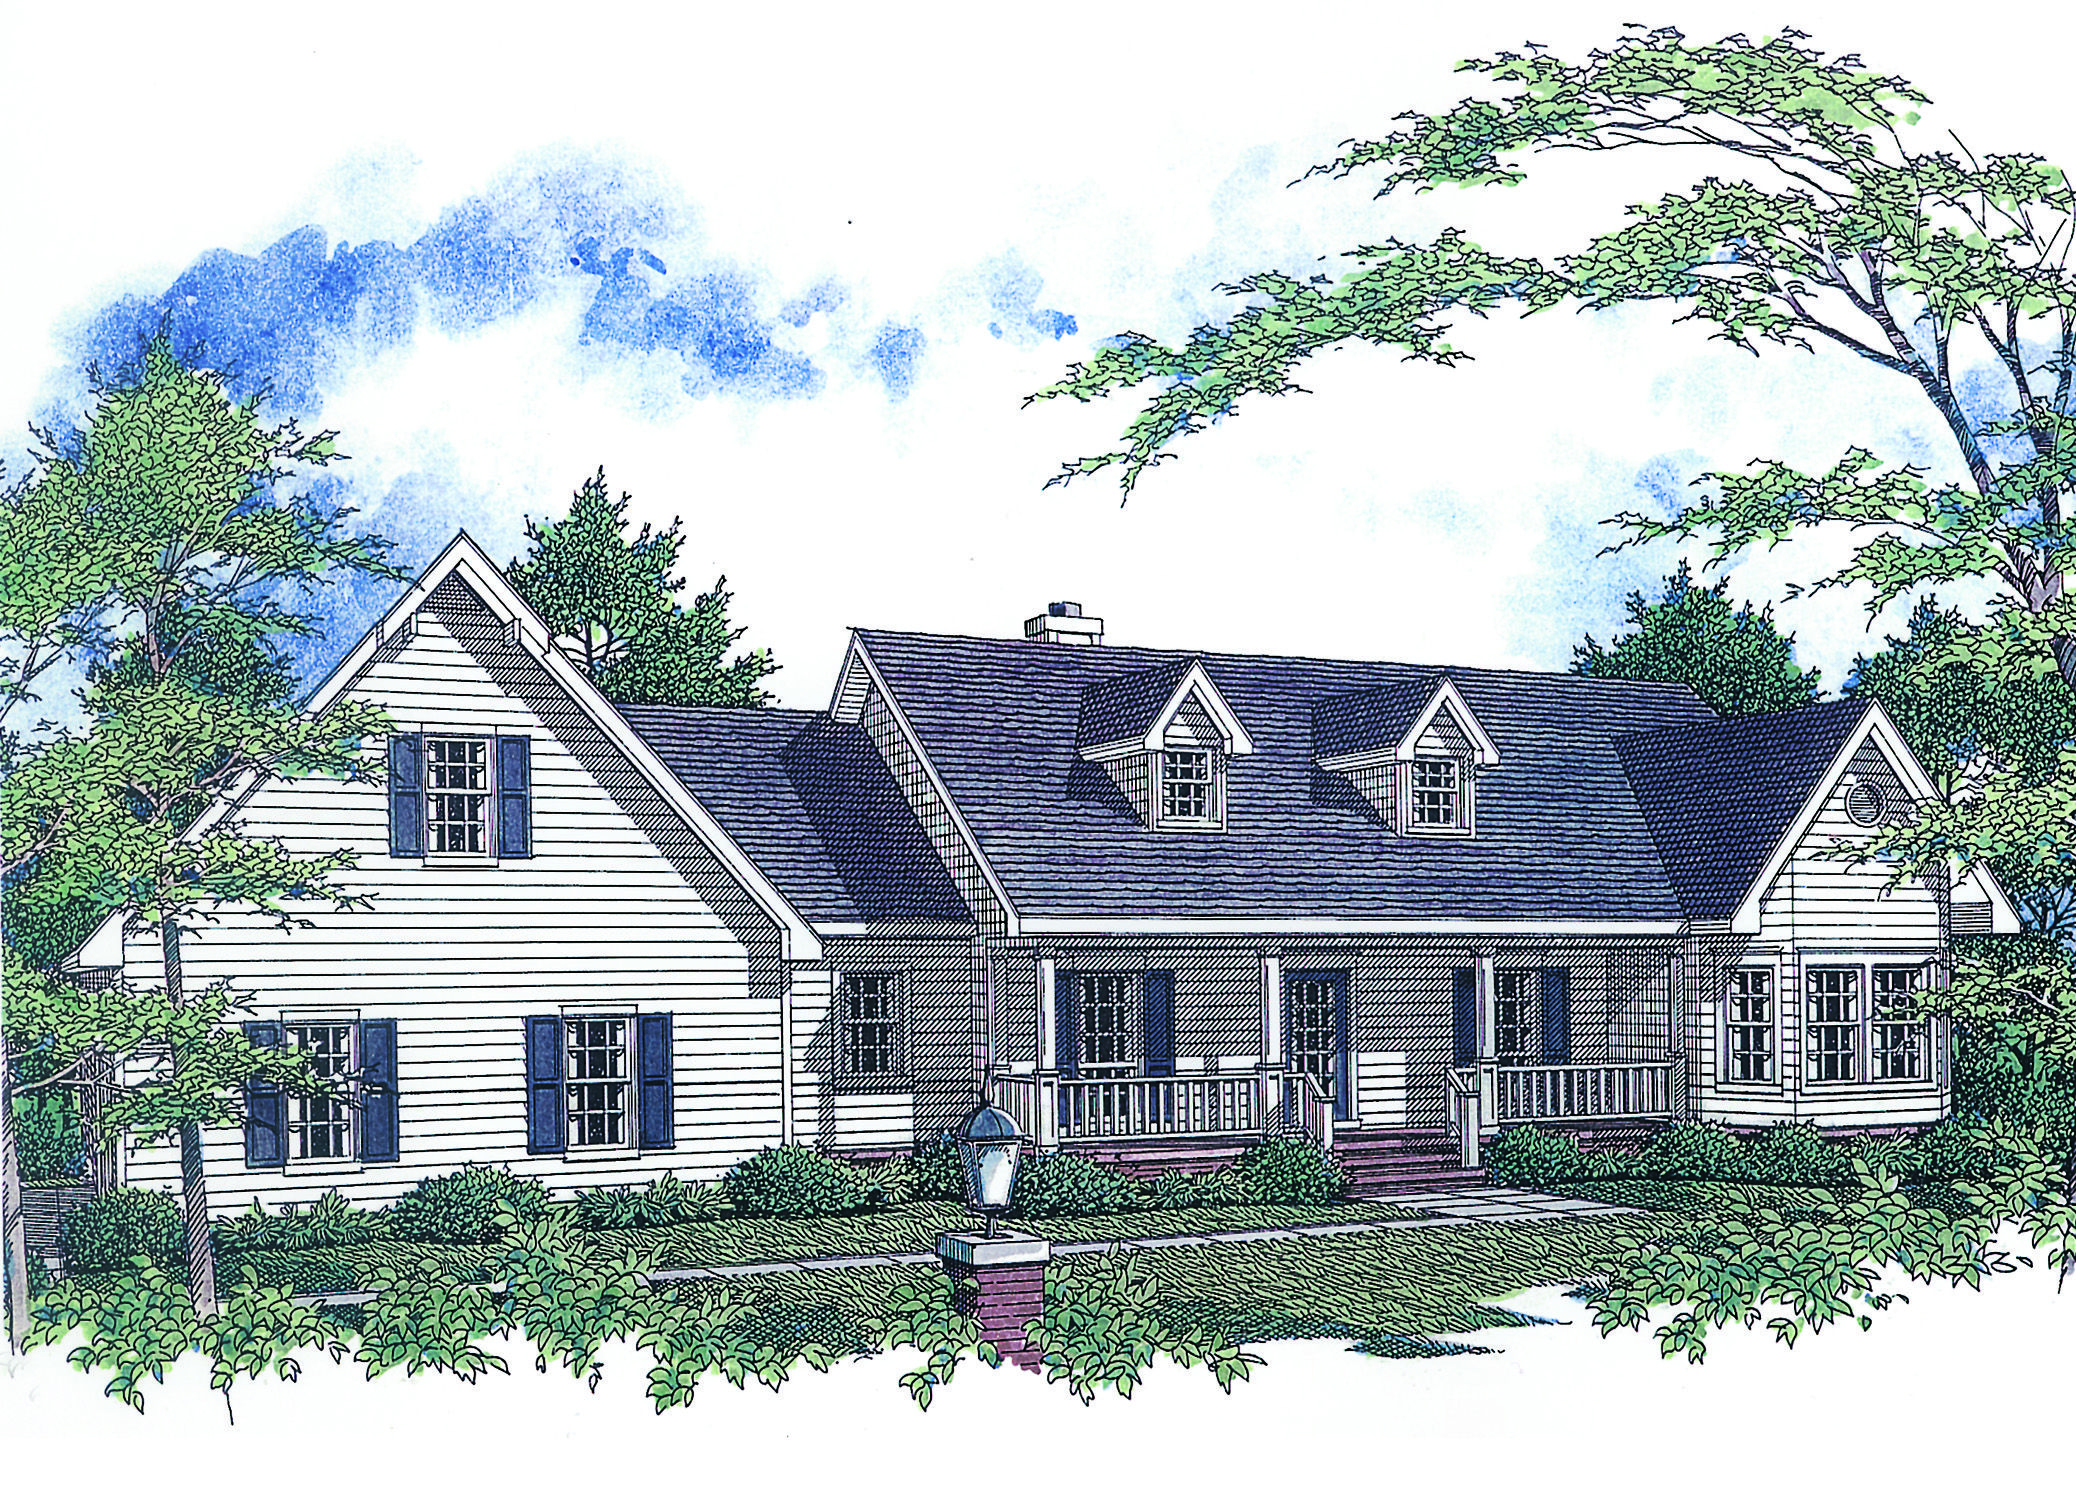 Plan 3416VL: Livable Family Home Plan | Country farmhouse, Bonus ...